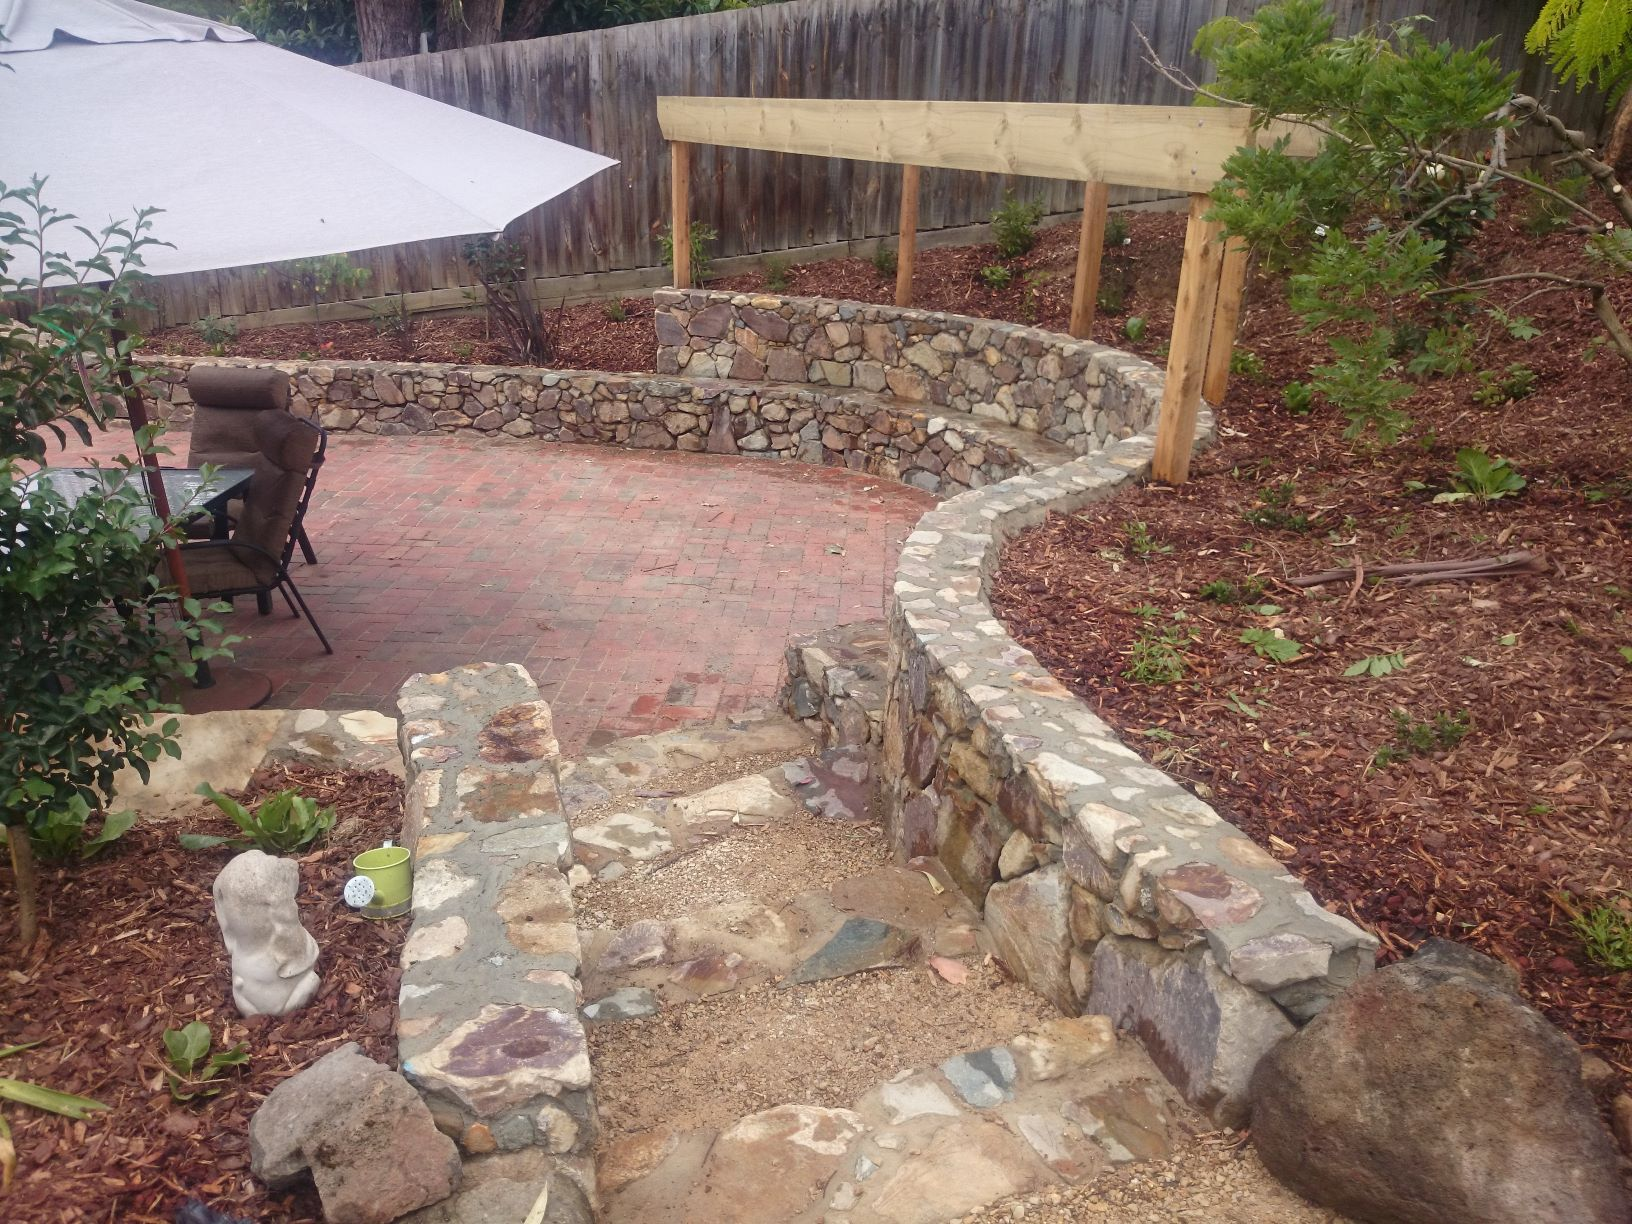 Coldstream Stone retaining wall with seat, Timber frame for climber, curved retaining wall, Eltham retaining wall, stone retaining wall, Eltham entertaining area